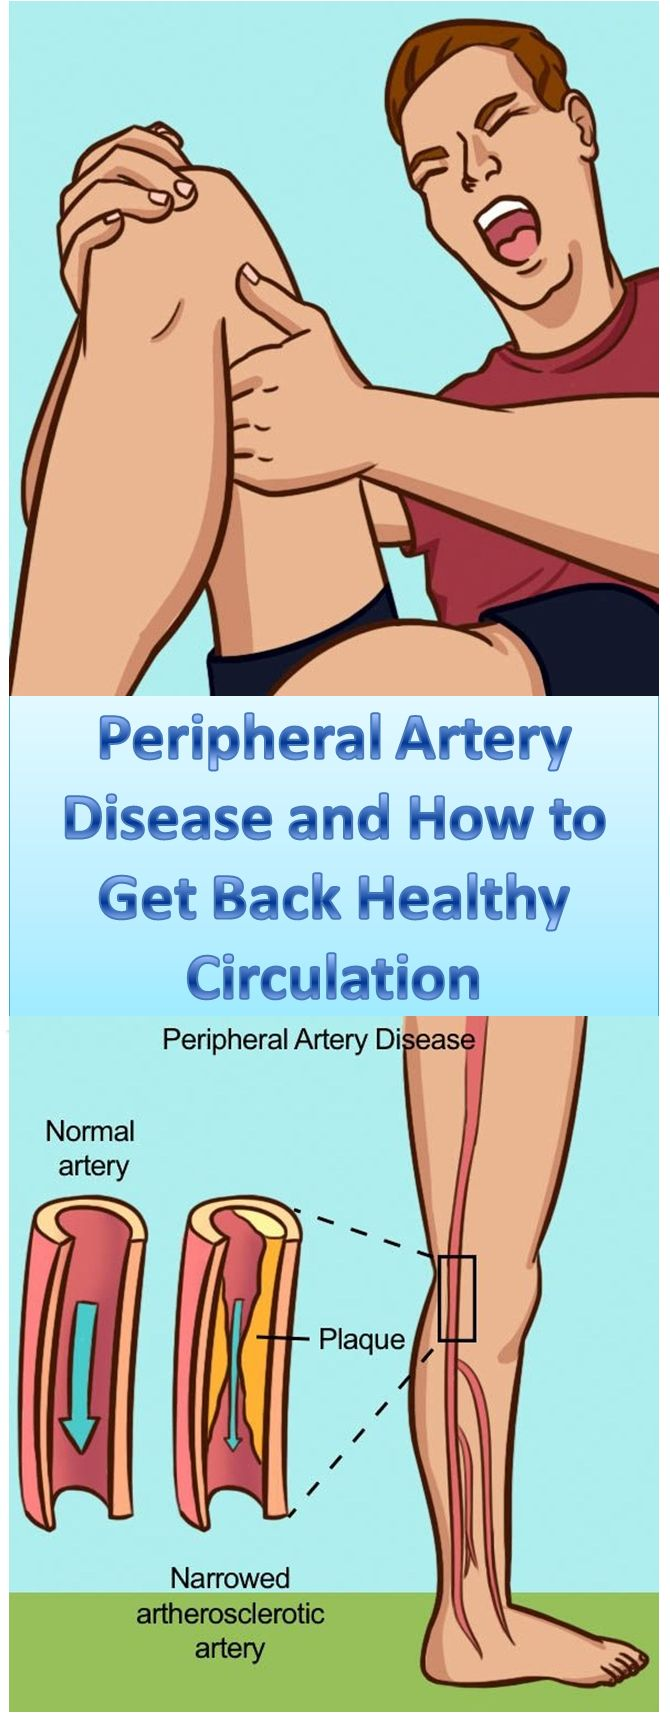 Peripheral Artery Disease and How to Get Back Healthy Circulation